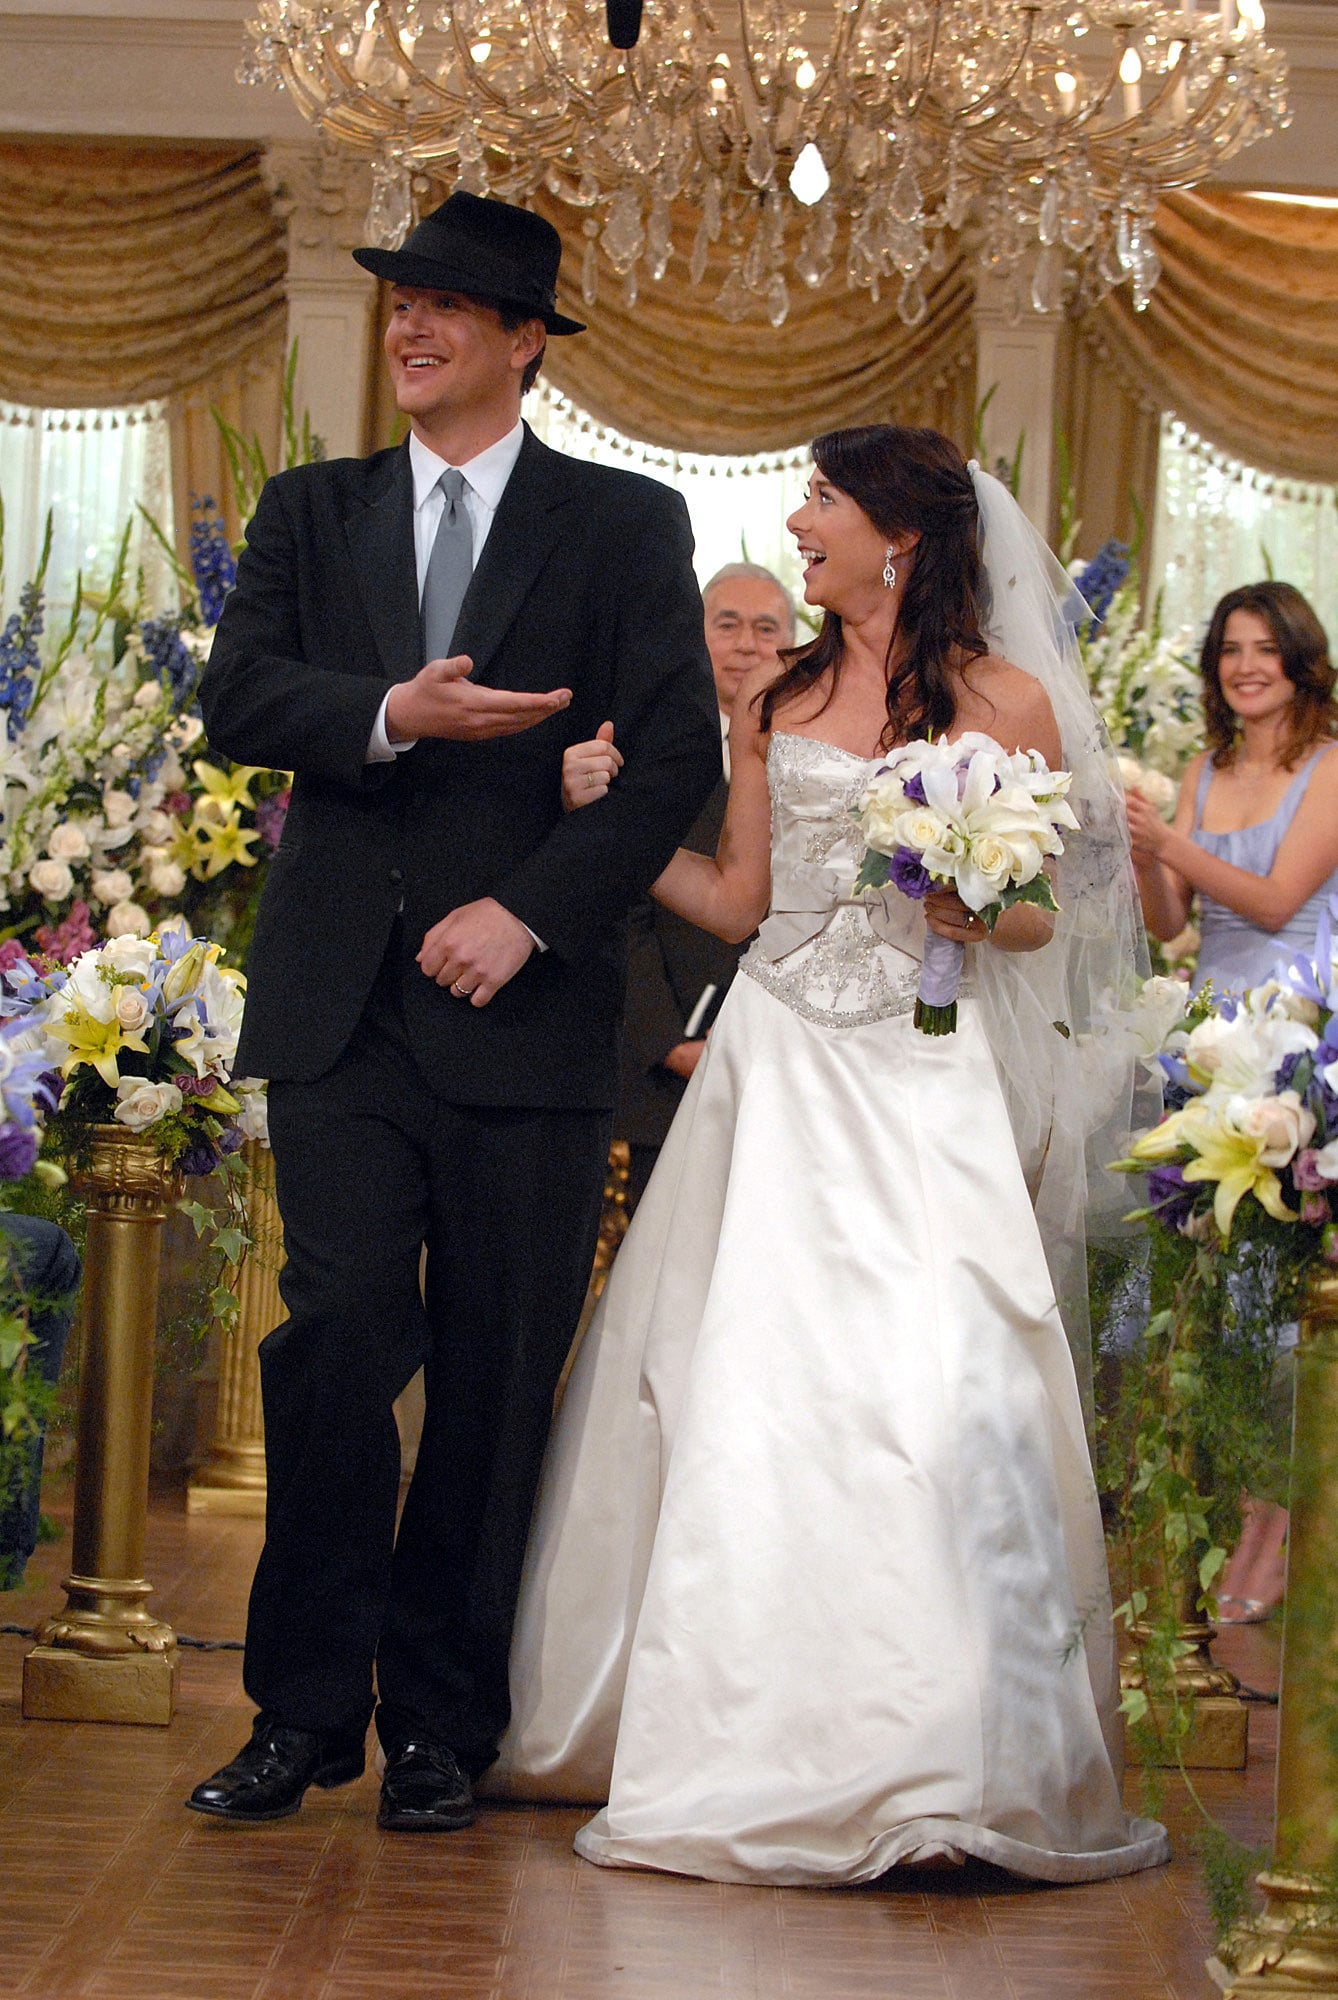 How I Met Your Mother Marshall weds Lily